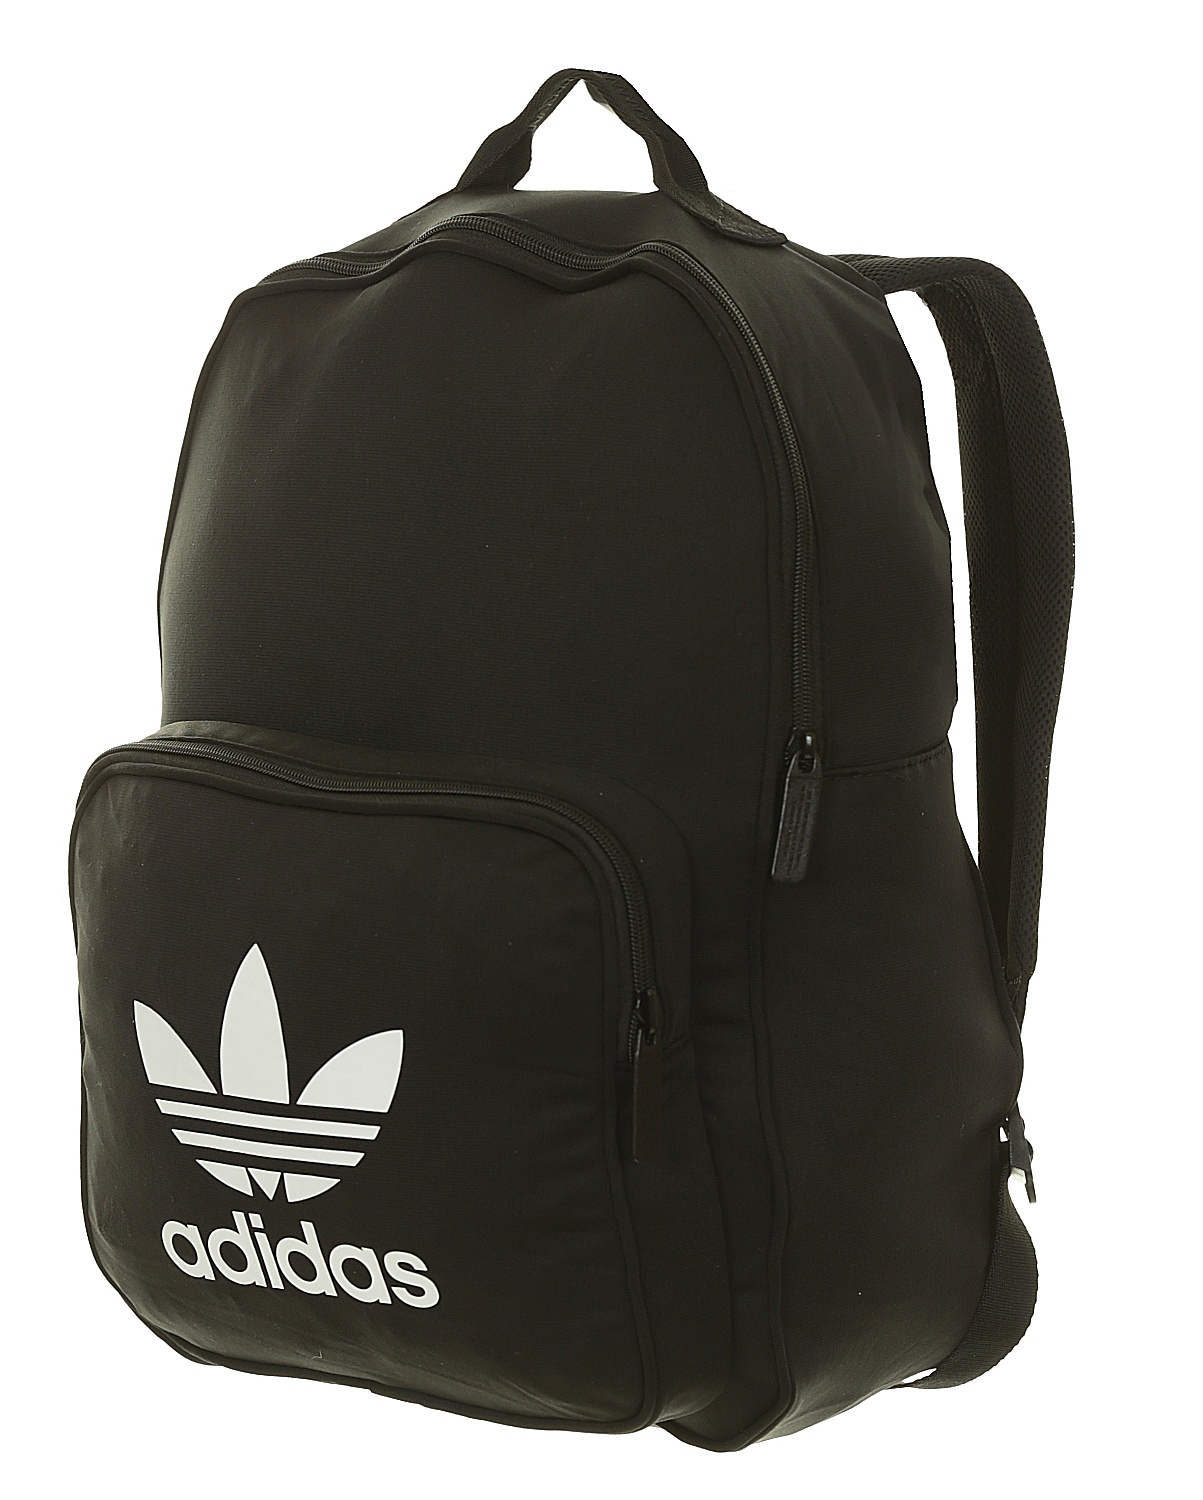 4c6fbe892578 backpack adidas Originals Classic Tricot - Black - Snowboard shop ...